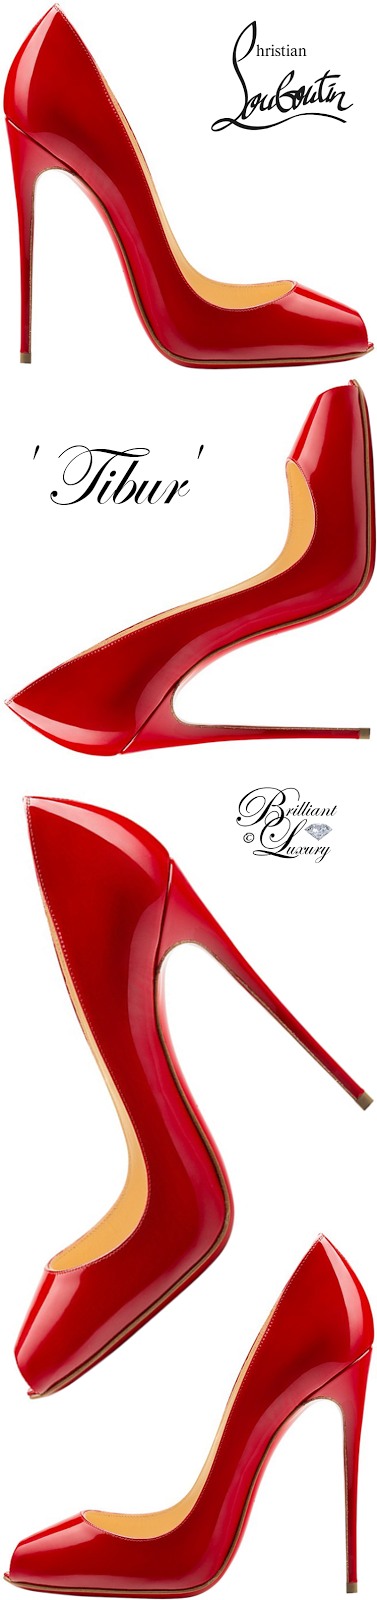 Brilliant Luxury ♦ Christian Louboutin Tibur Open Toe Red Sole Pump #red